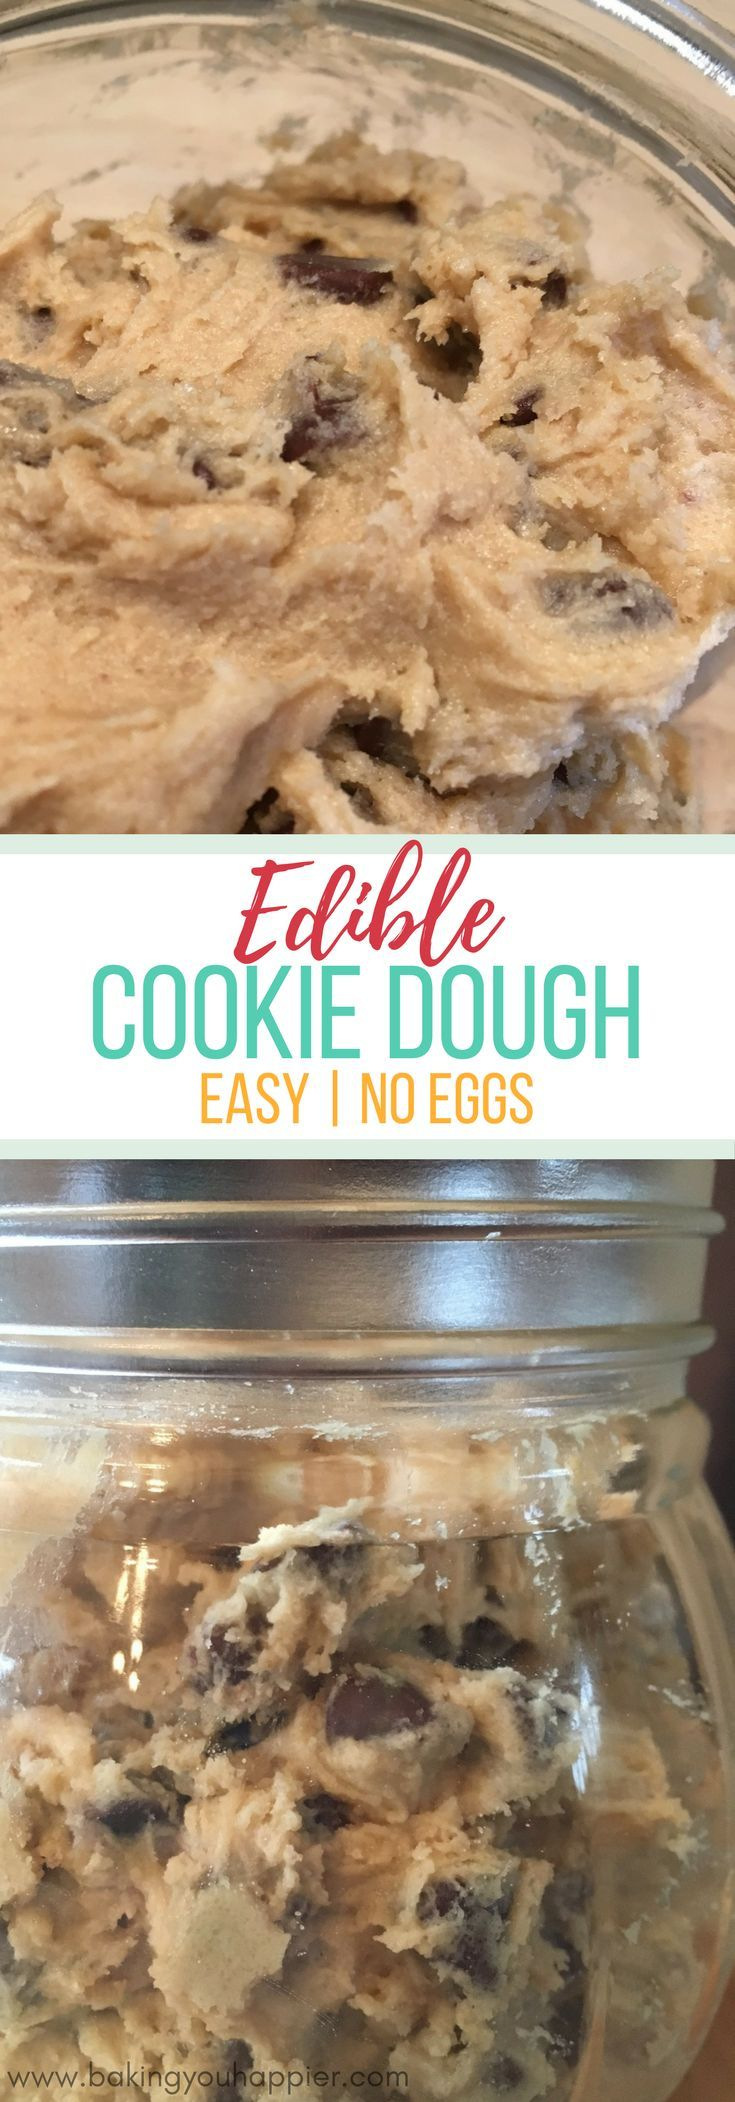 Edible Eggless Cookie Dough Recipe | Baking You Happier